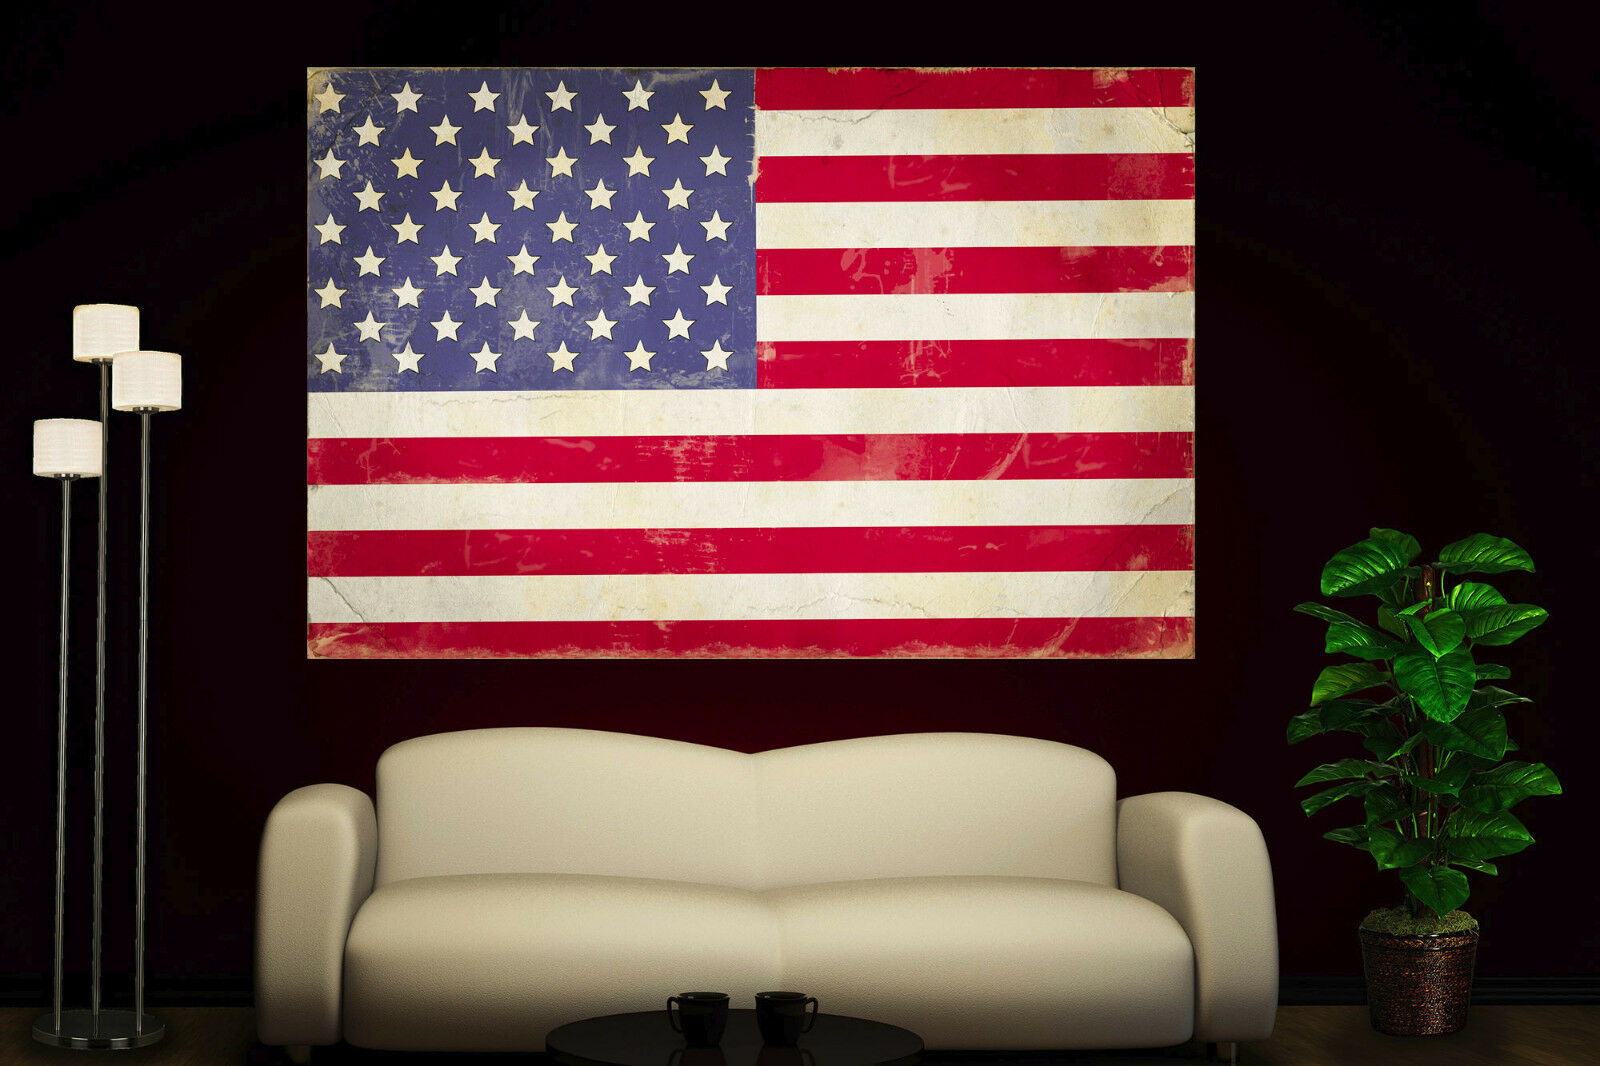 Canvas Giclee Druckens Kunst Vintage American Flag Photo Farbeful Drucken Decor rot 2